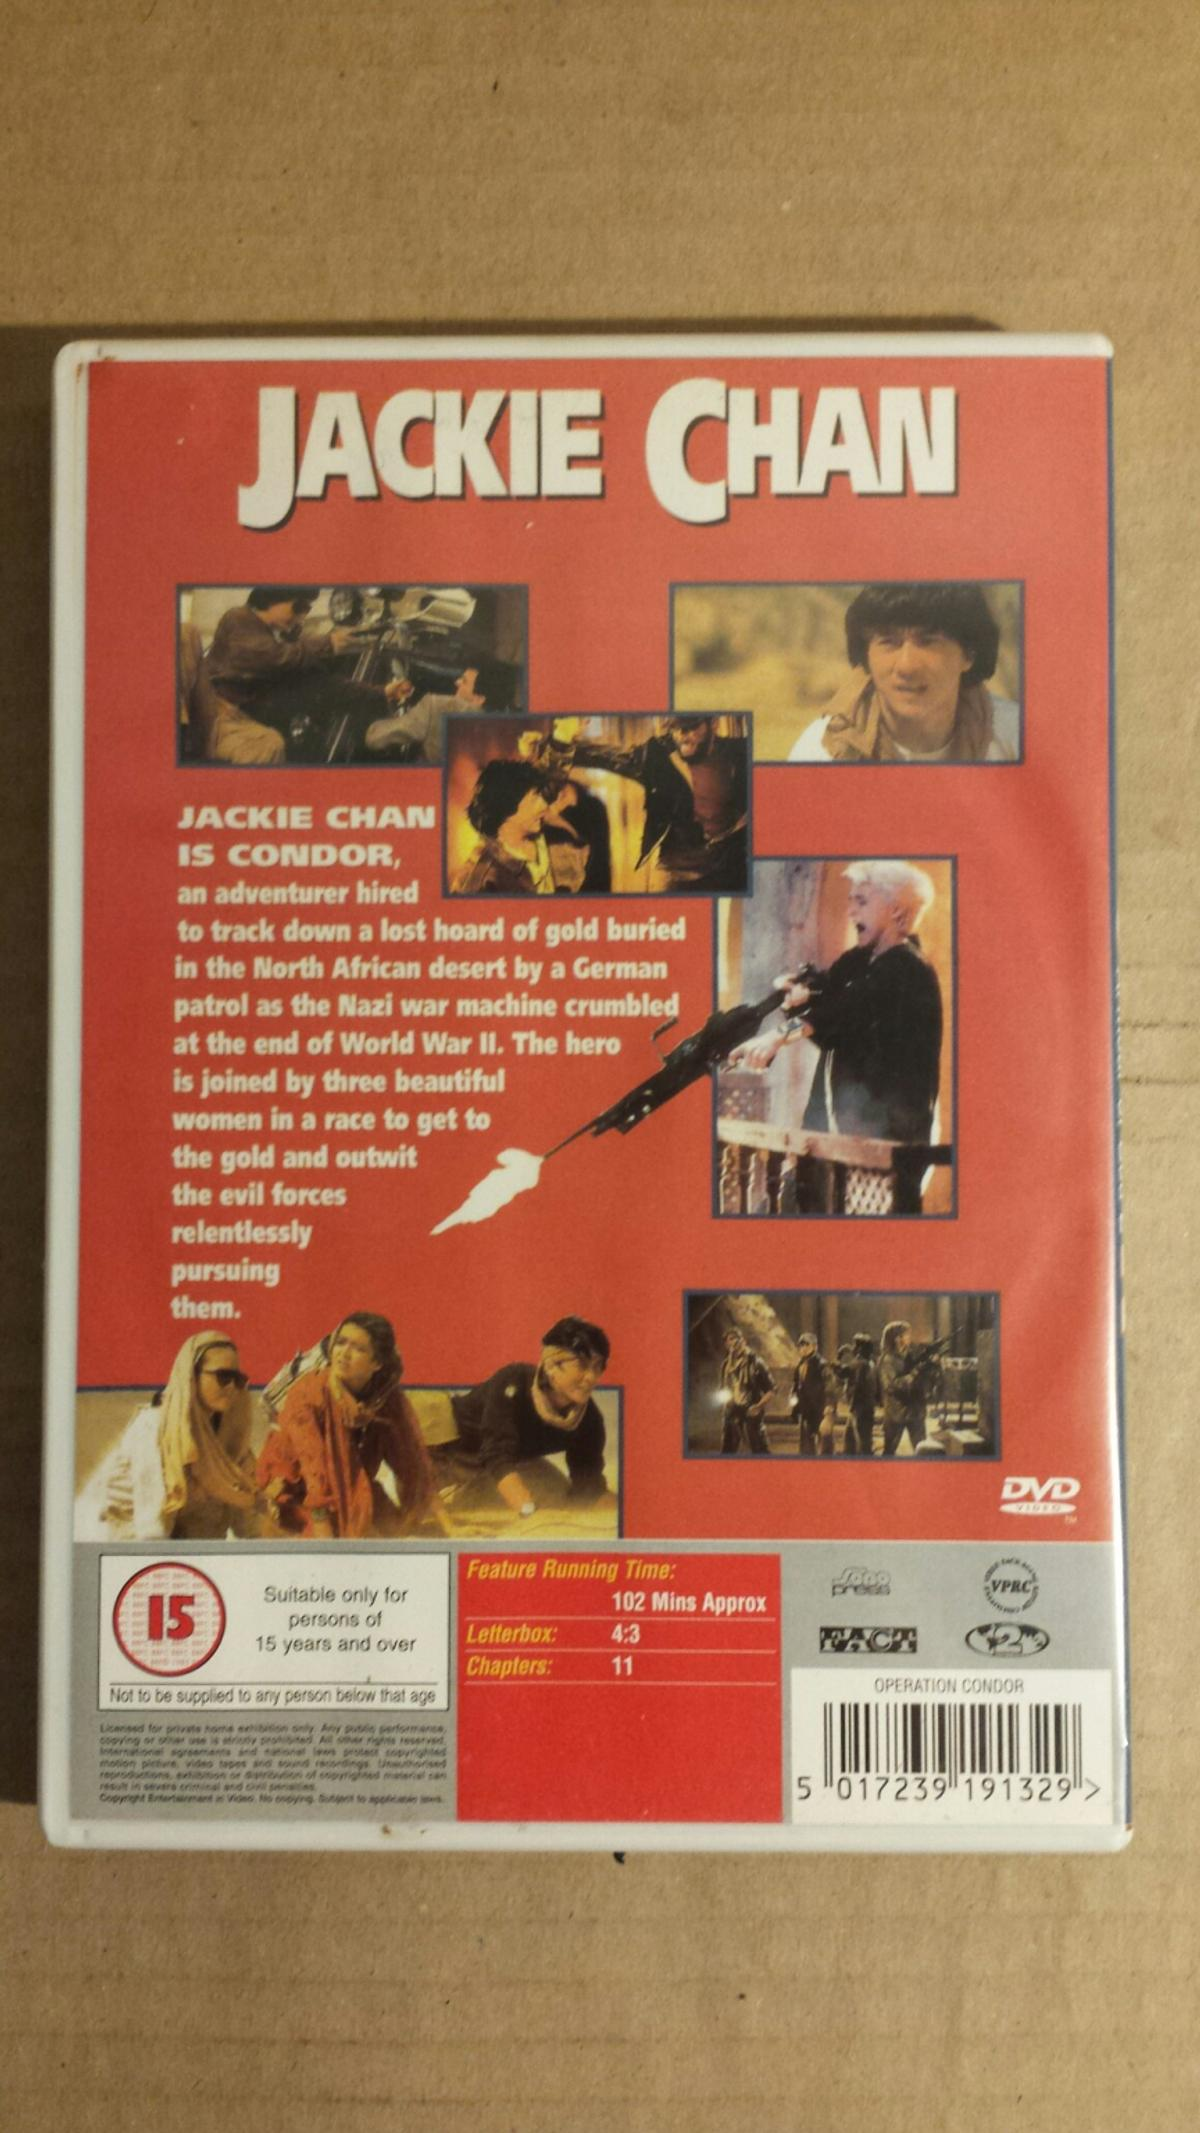 JACKIE CHAN ARMOUR OF GOD 2 DVD in ST5-Lyme for £3 00 for